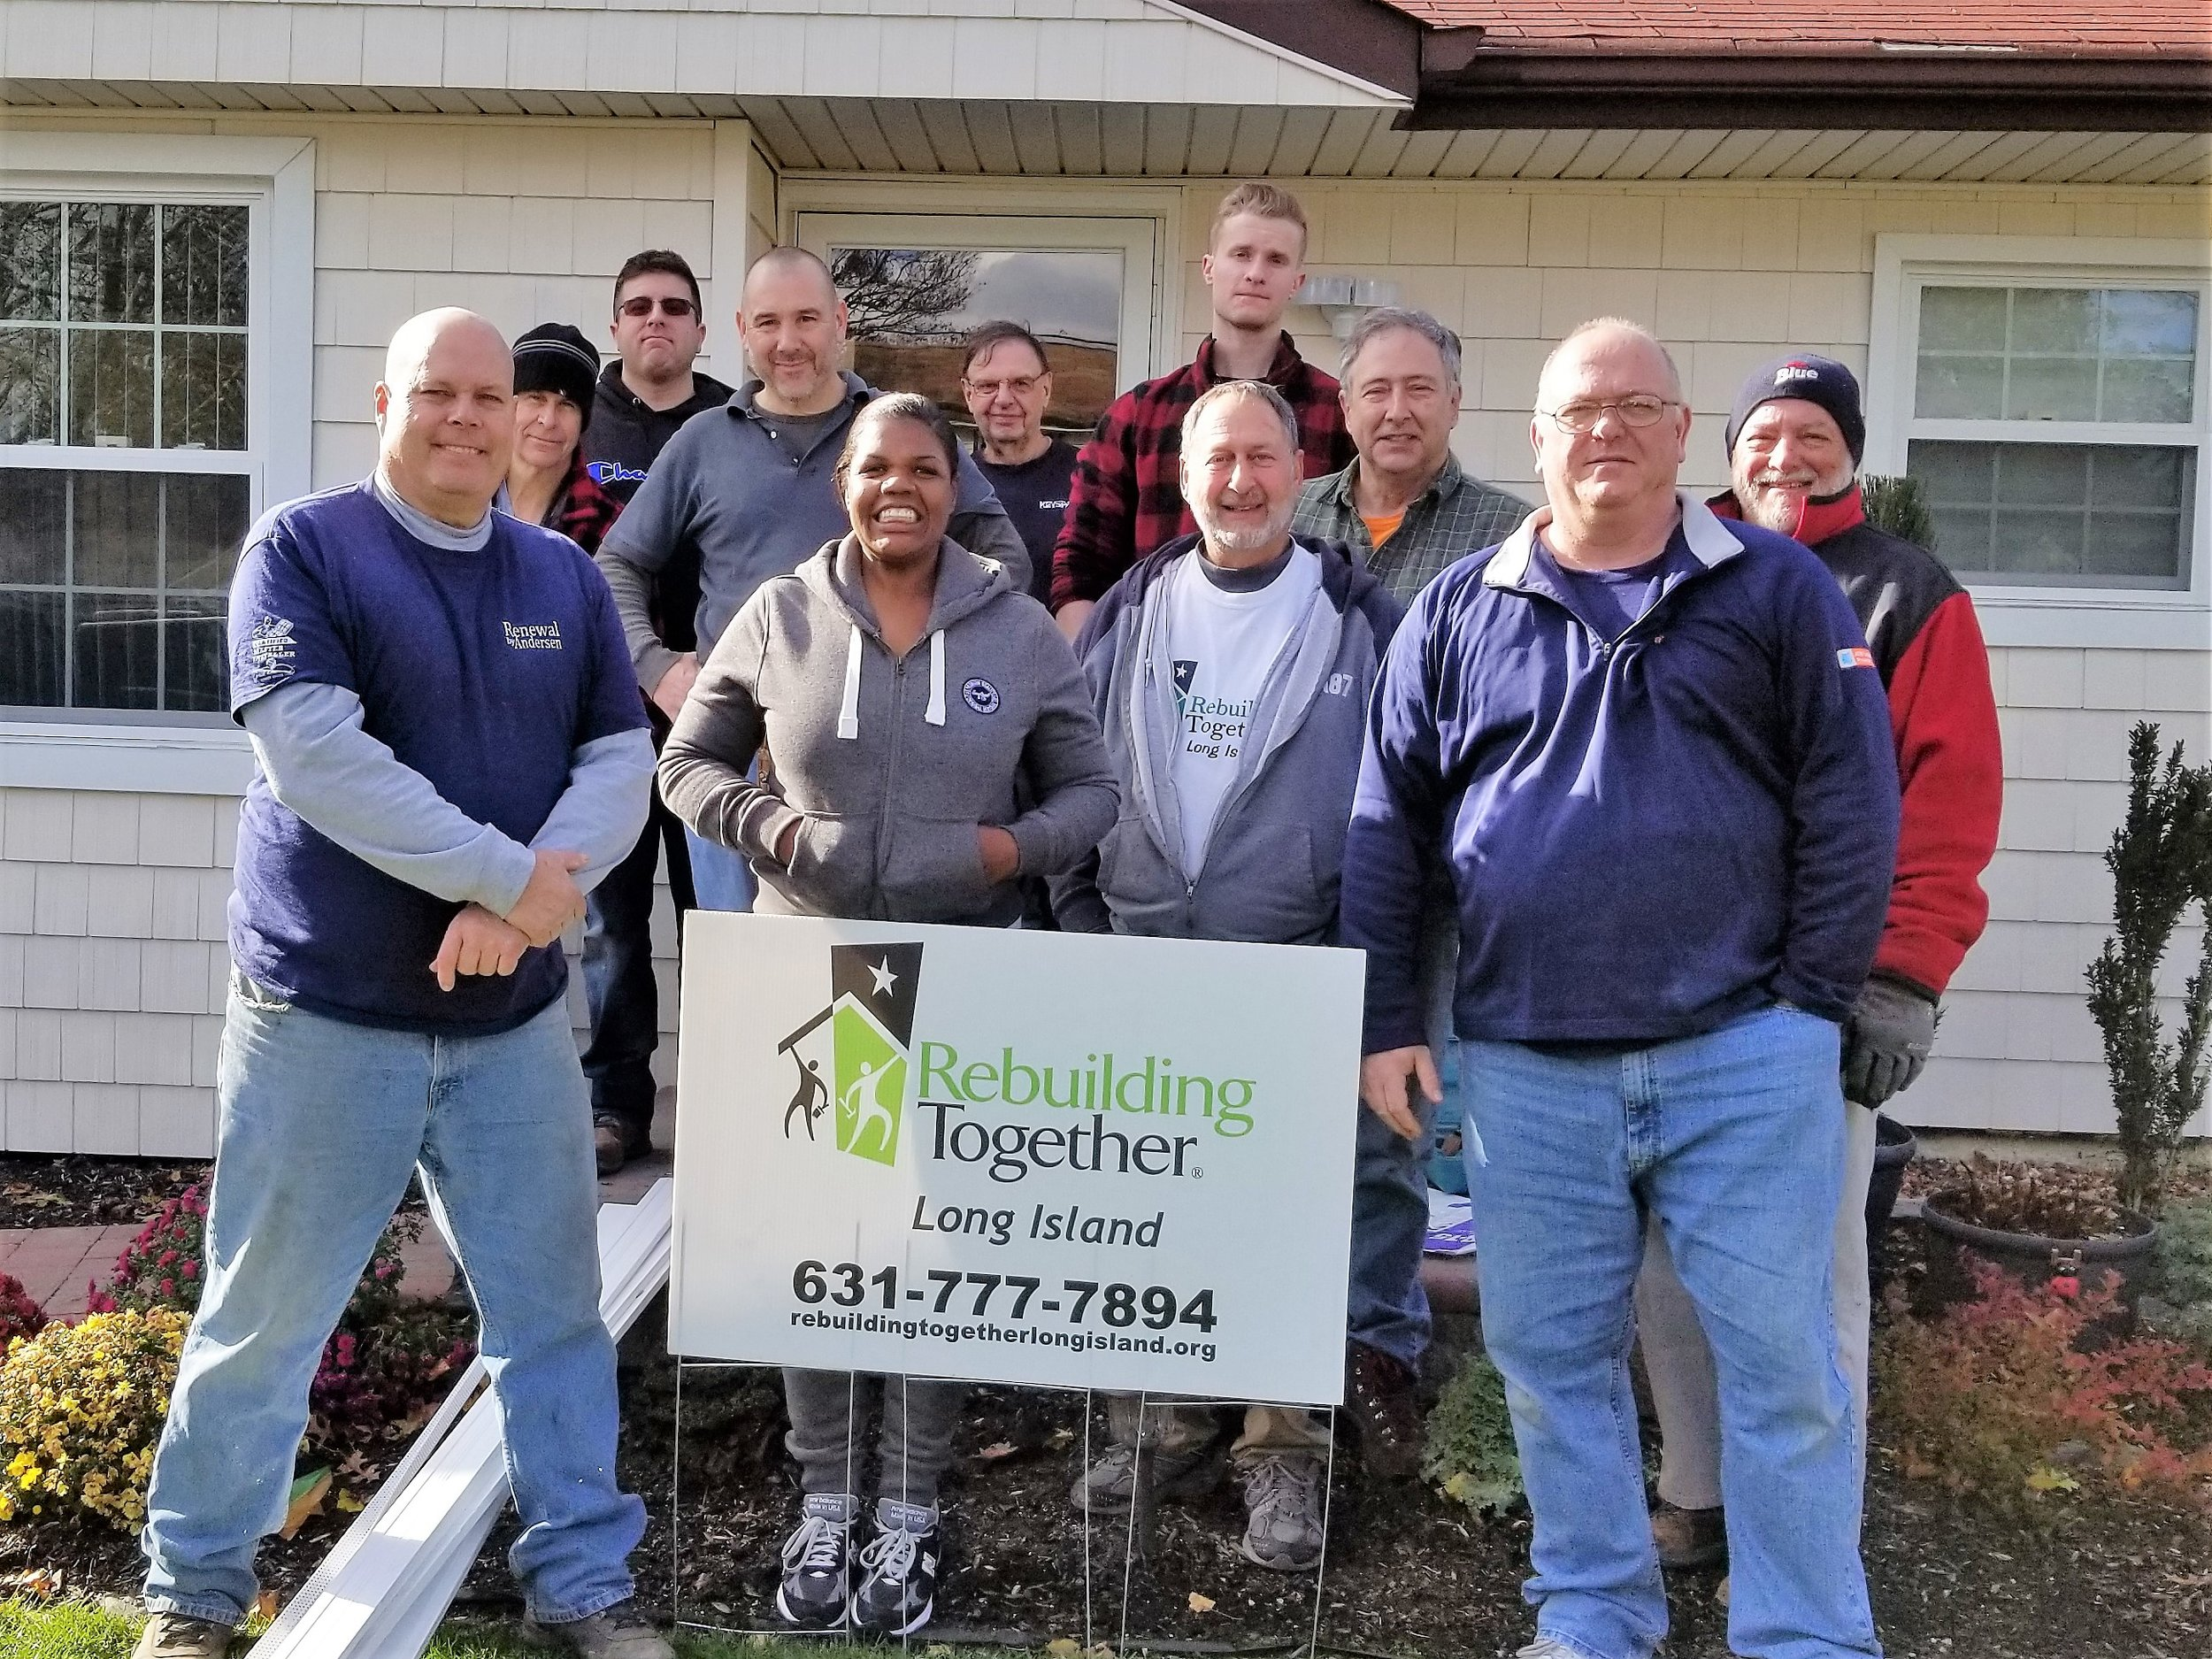 Renewal by Andersen of Long Island - Helps an Army veteran with home repairs and safety modifications!